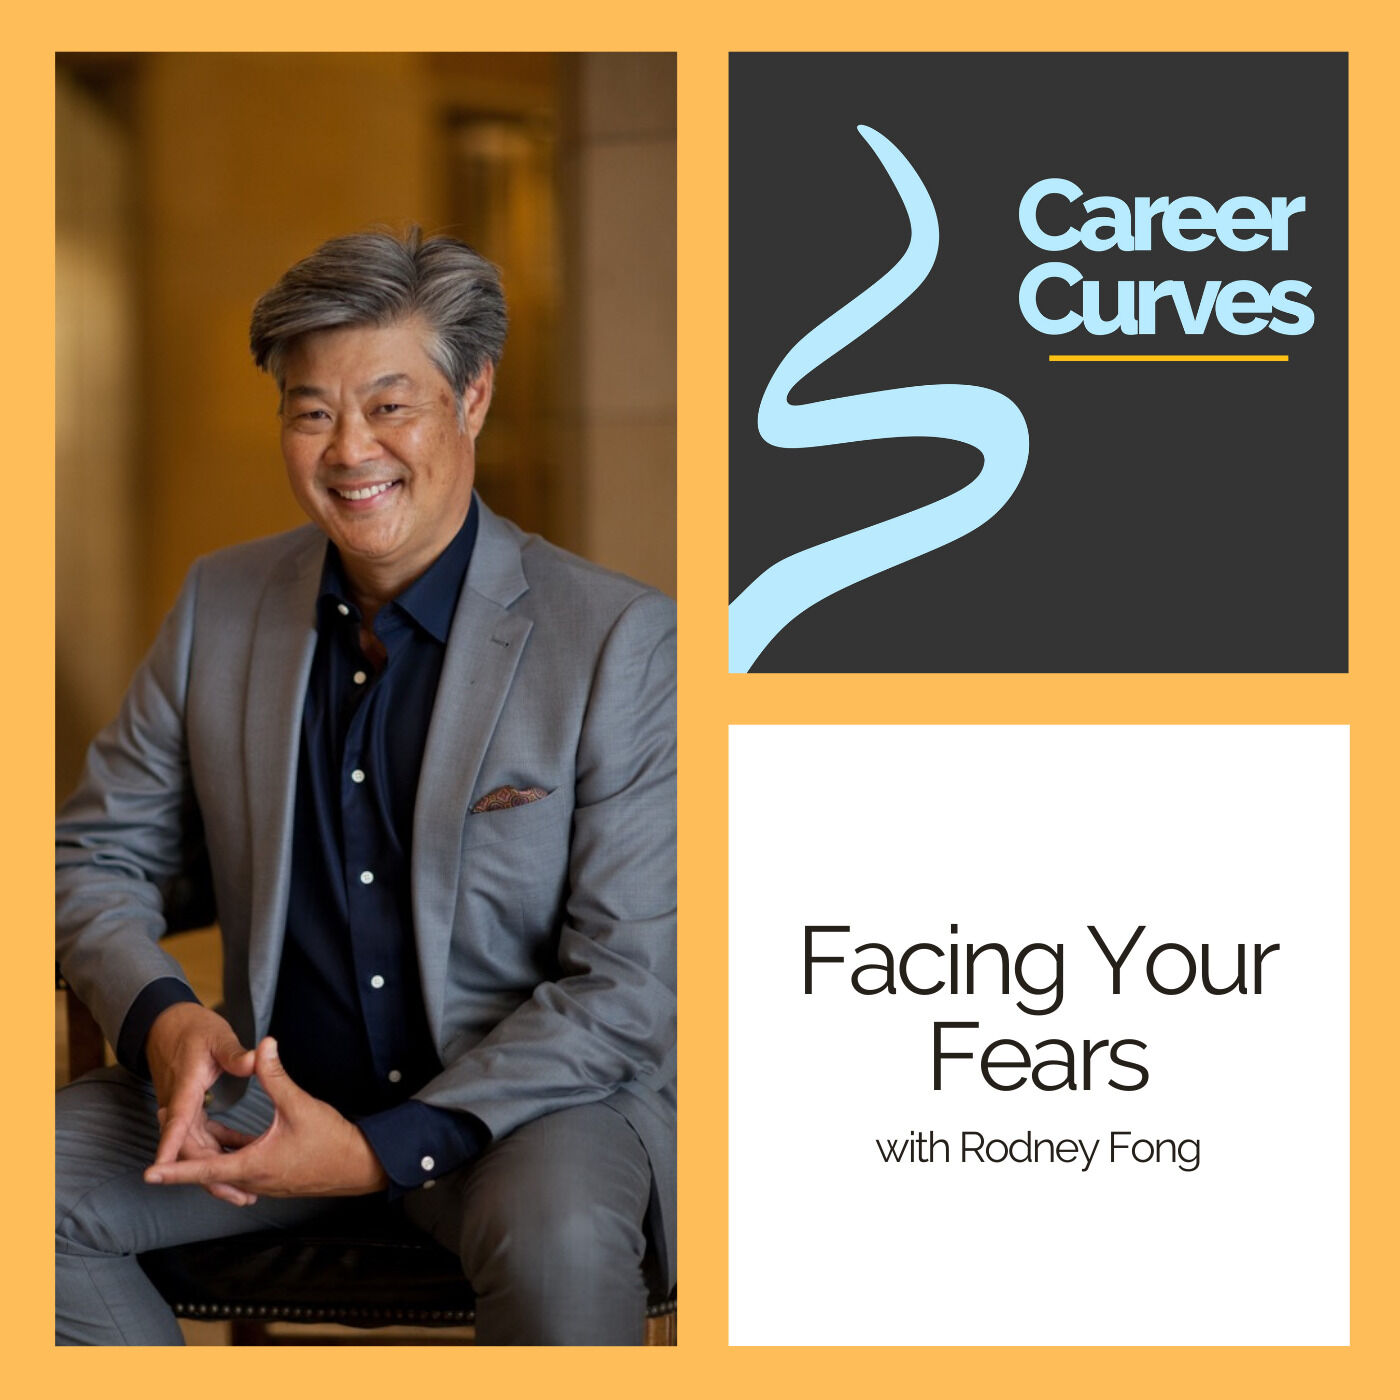 Facing Your Fears with Rodney Fong